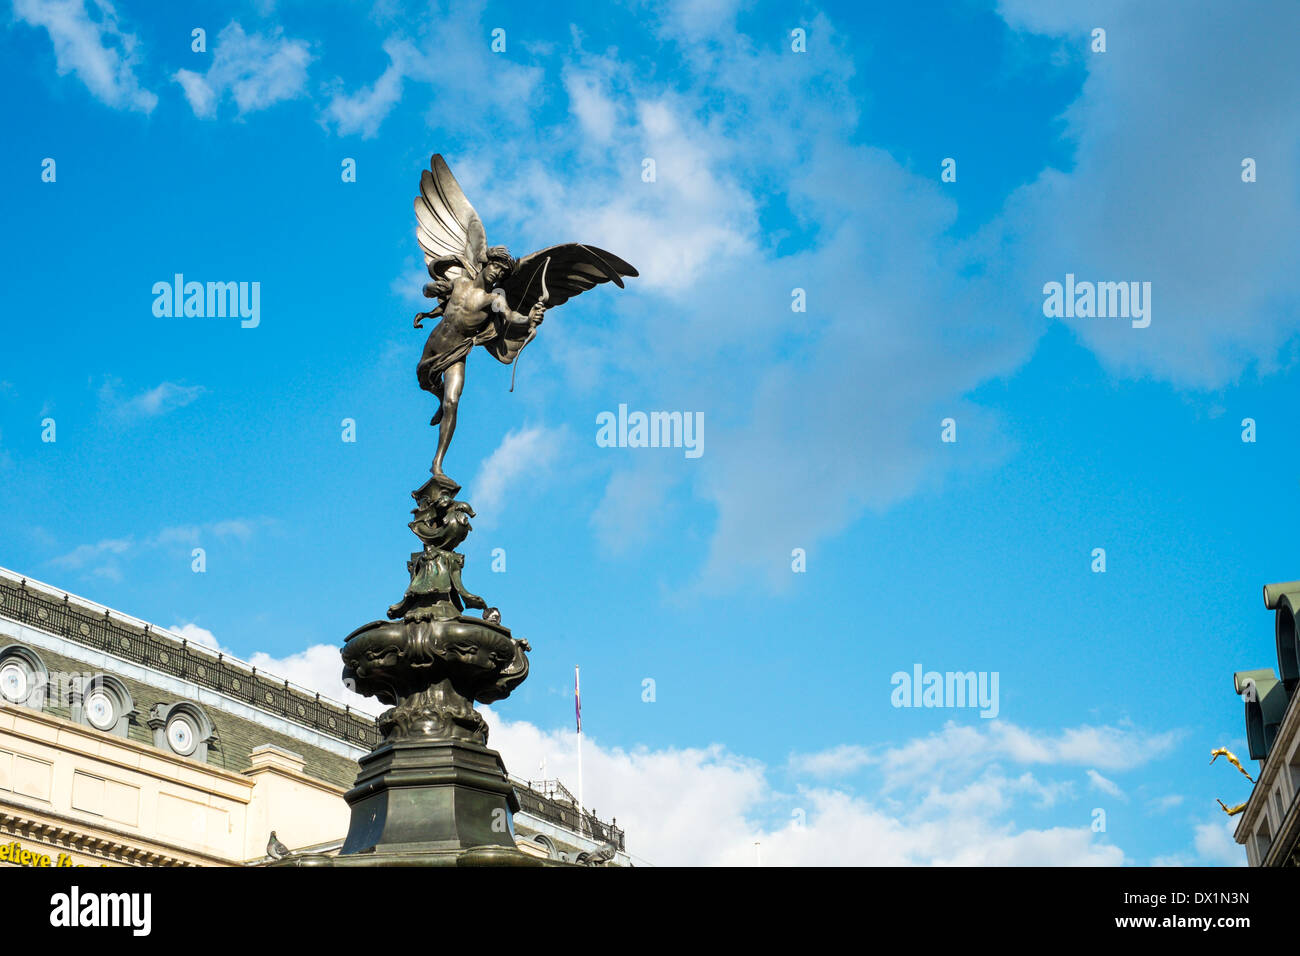 LONDON, UK - MARCH 14: Alfred Gilbert's statue of Eros in Piccadilly Circus. March 01, 2014 in London. - Stock Image